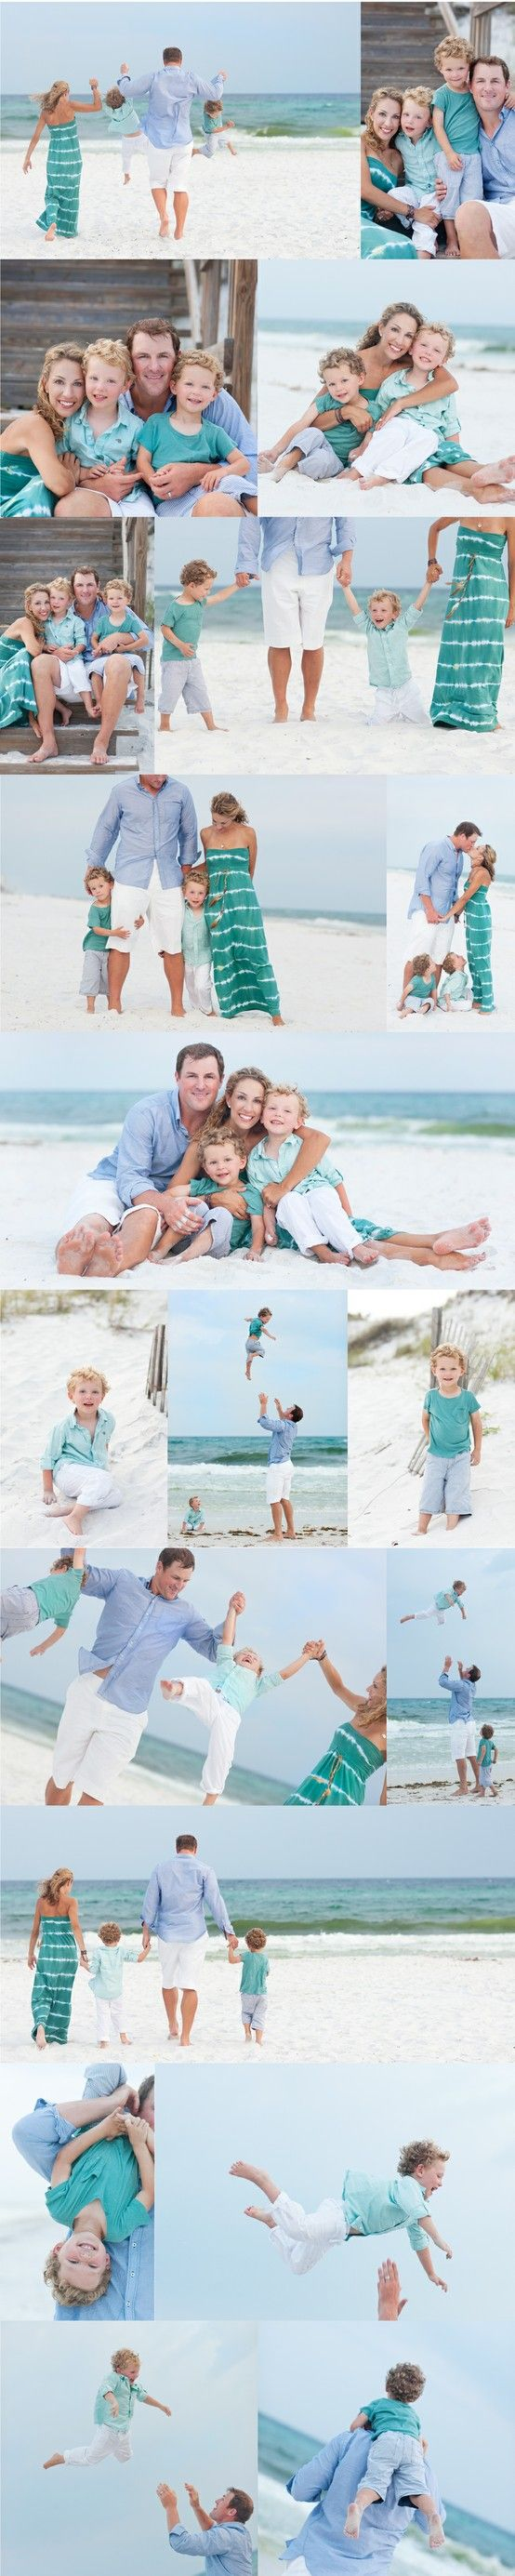 super cute family of 4. Look at the posing.  See how all the heads are together tight. Love the actions shots with the dad tossing the kiddos. love the mom's dress and coordinating colors. But I'd love to see ya'll in pinks, creams, whites, etc.